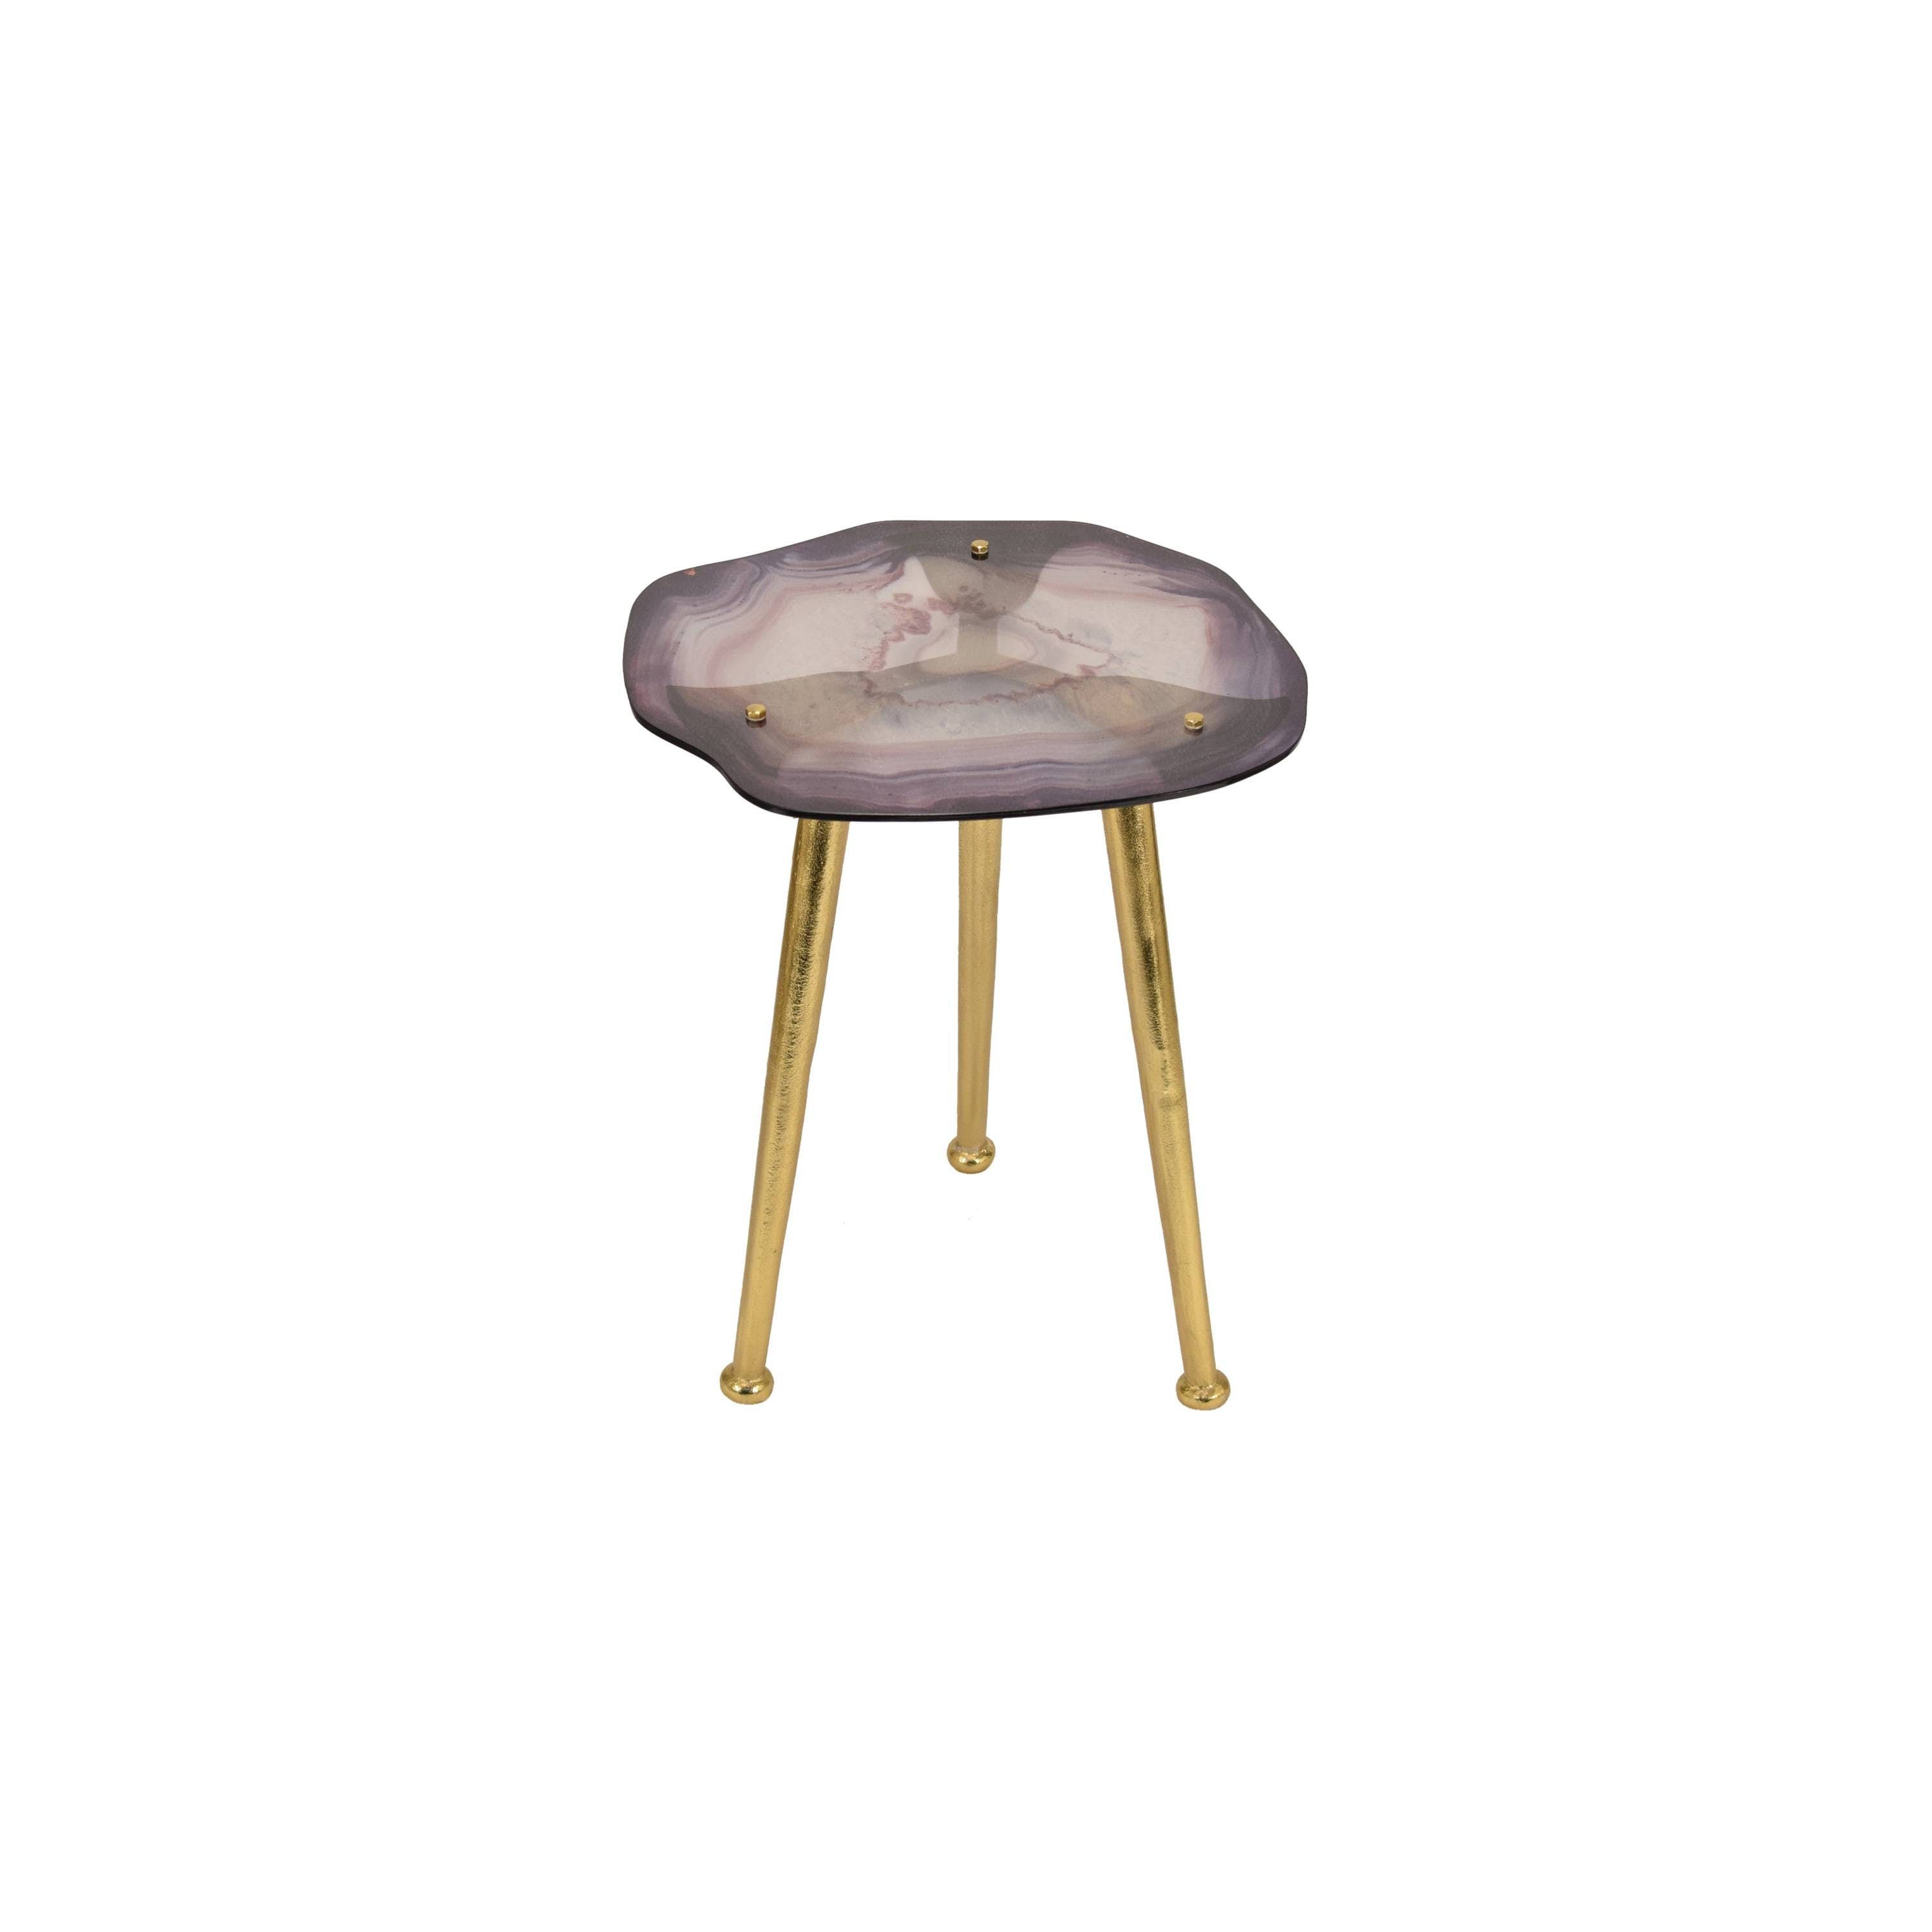 what love from nate berkus new target collection bathroom glass agate accent table small white bedside ikea round nightstand with drawer bistro set tiffany tulip lamp pottery barn